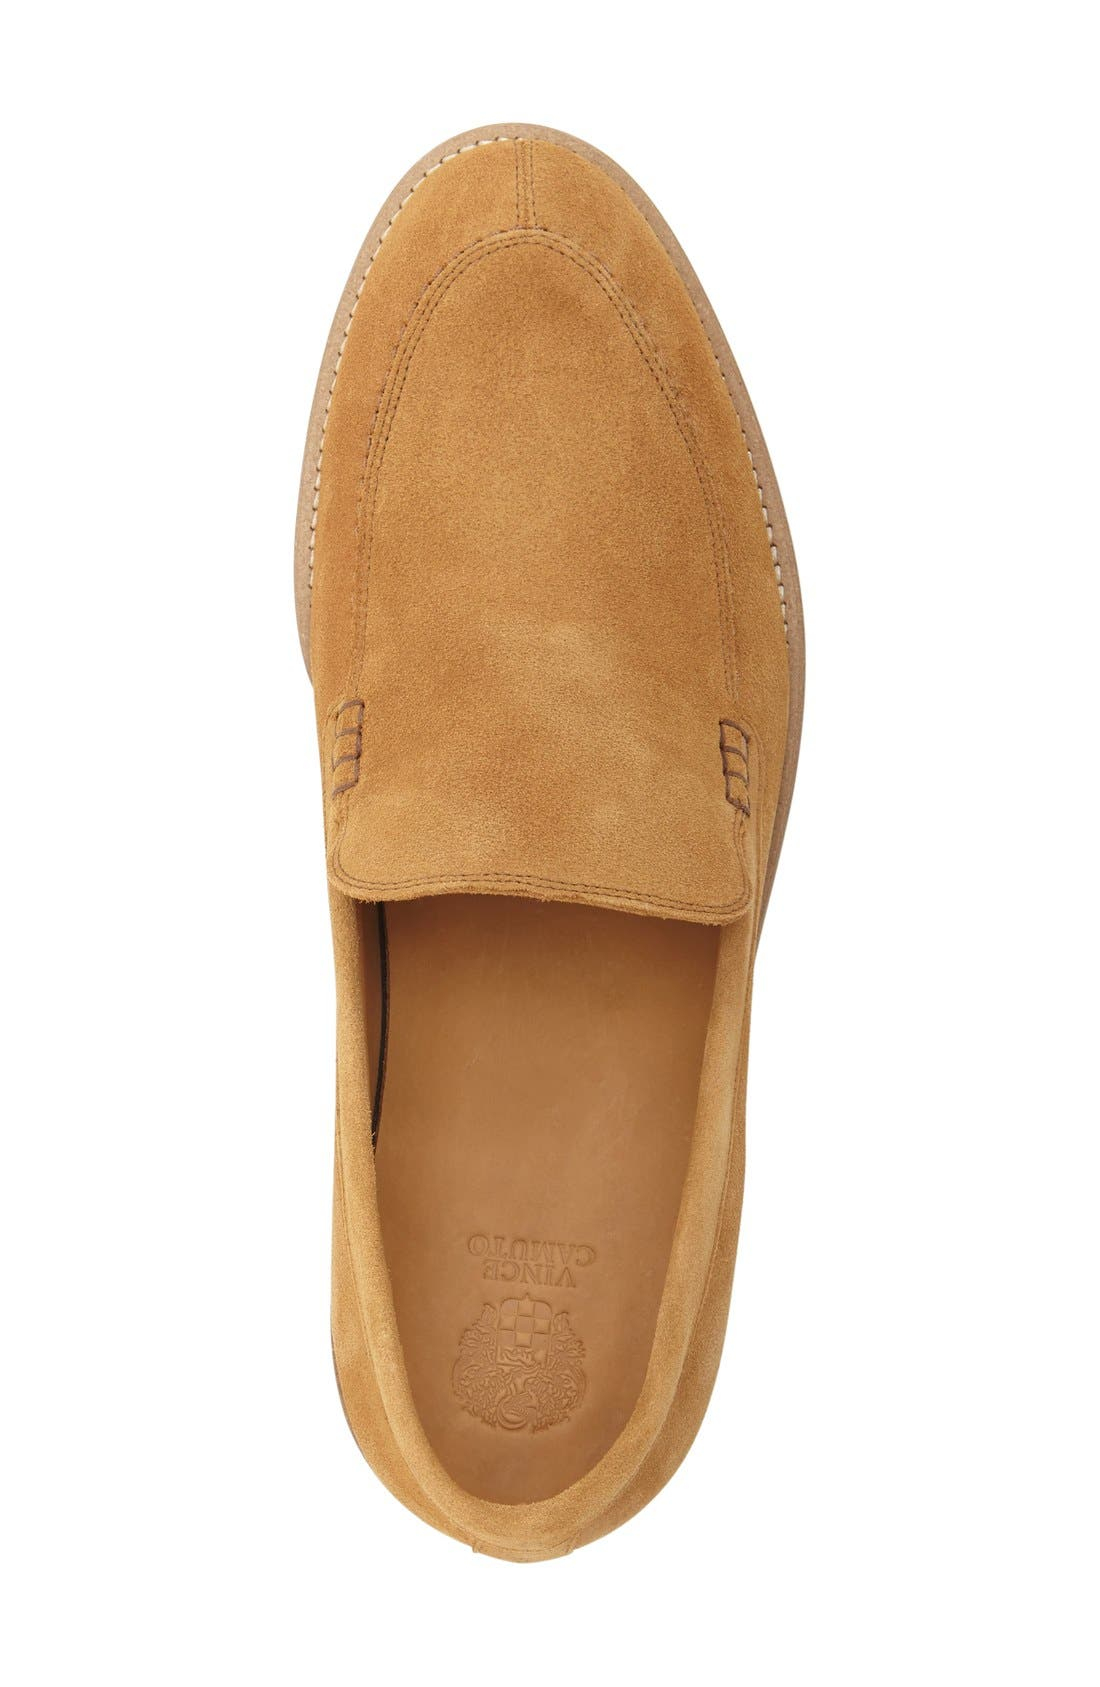 'Arleigh' Loafer,                             Alternate thumbnail 3, color,                             Lion